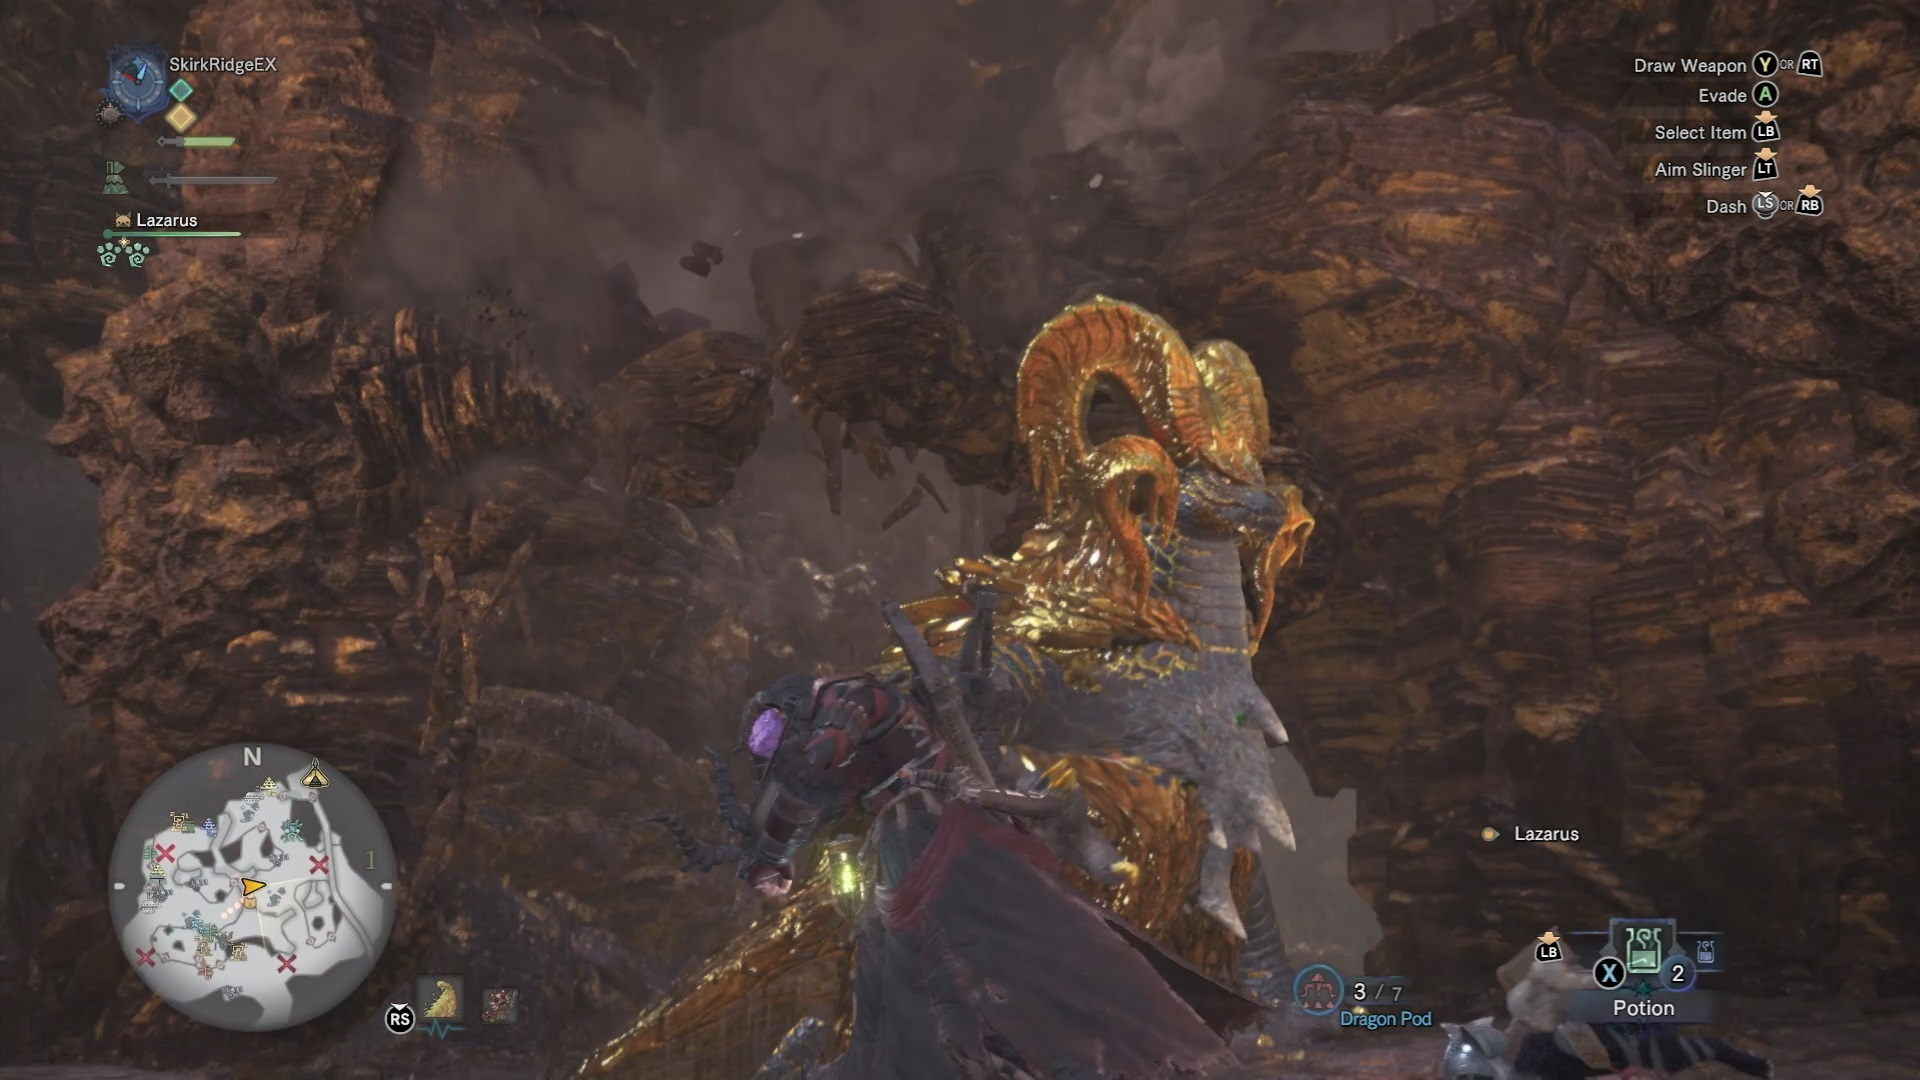 Some boulders are about to fall on Kulve Taroth.